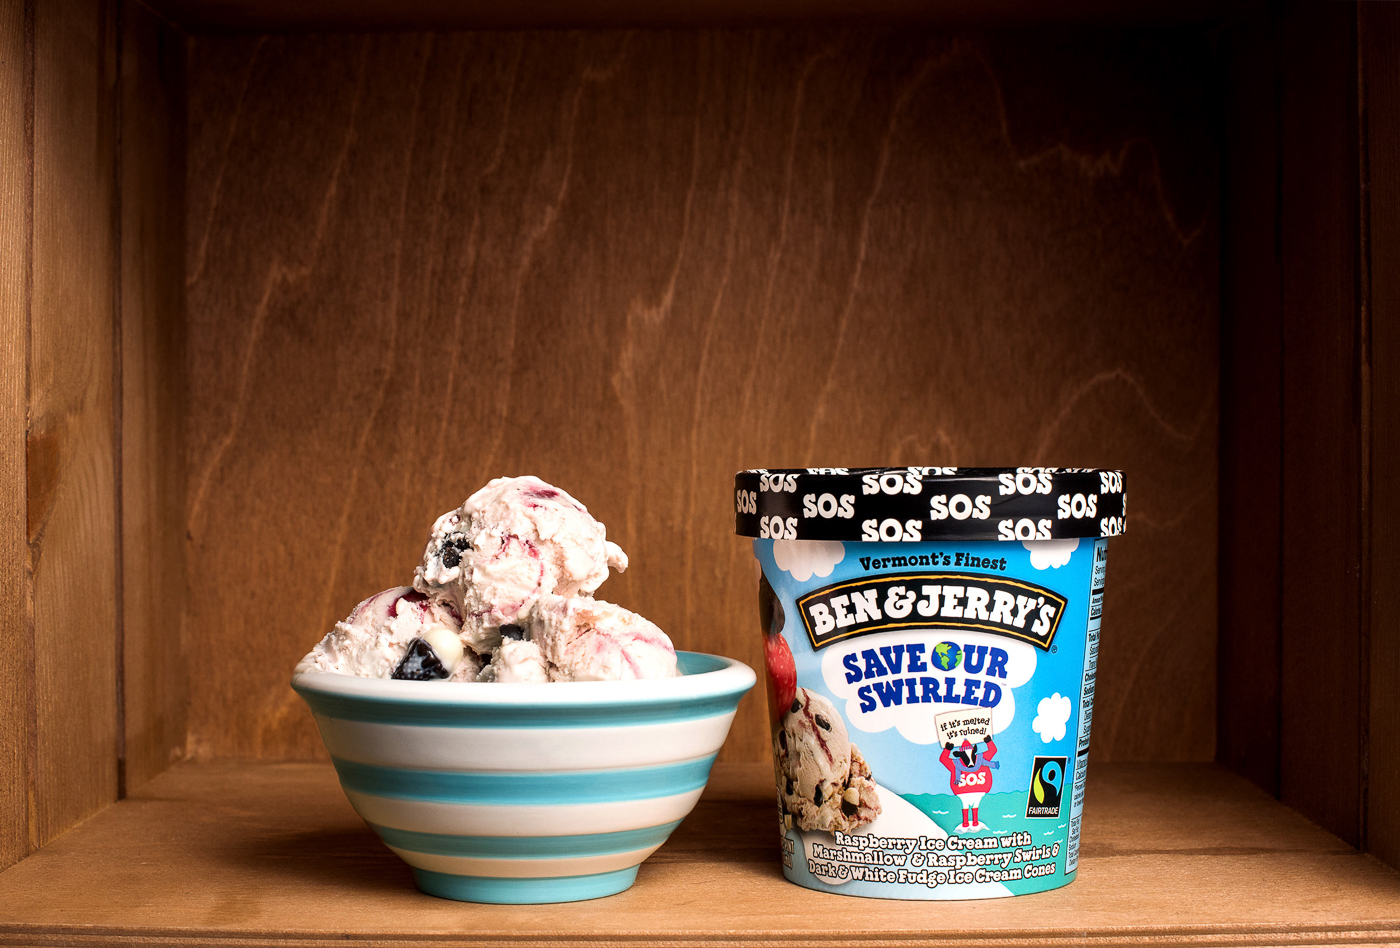 Ben & Jerry's Save Our Swirled ice cream